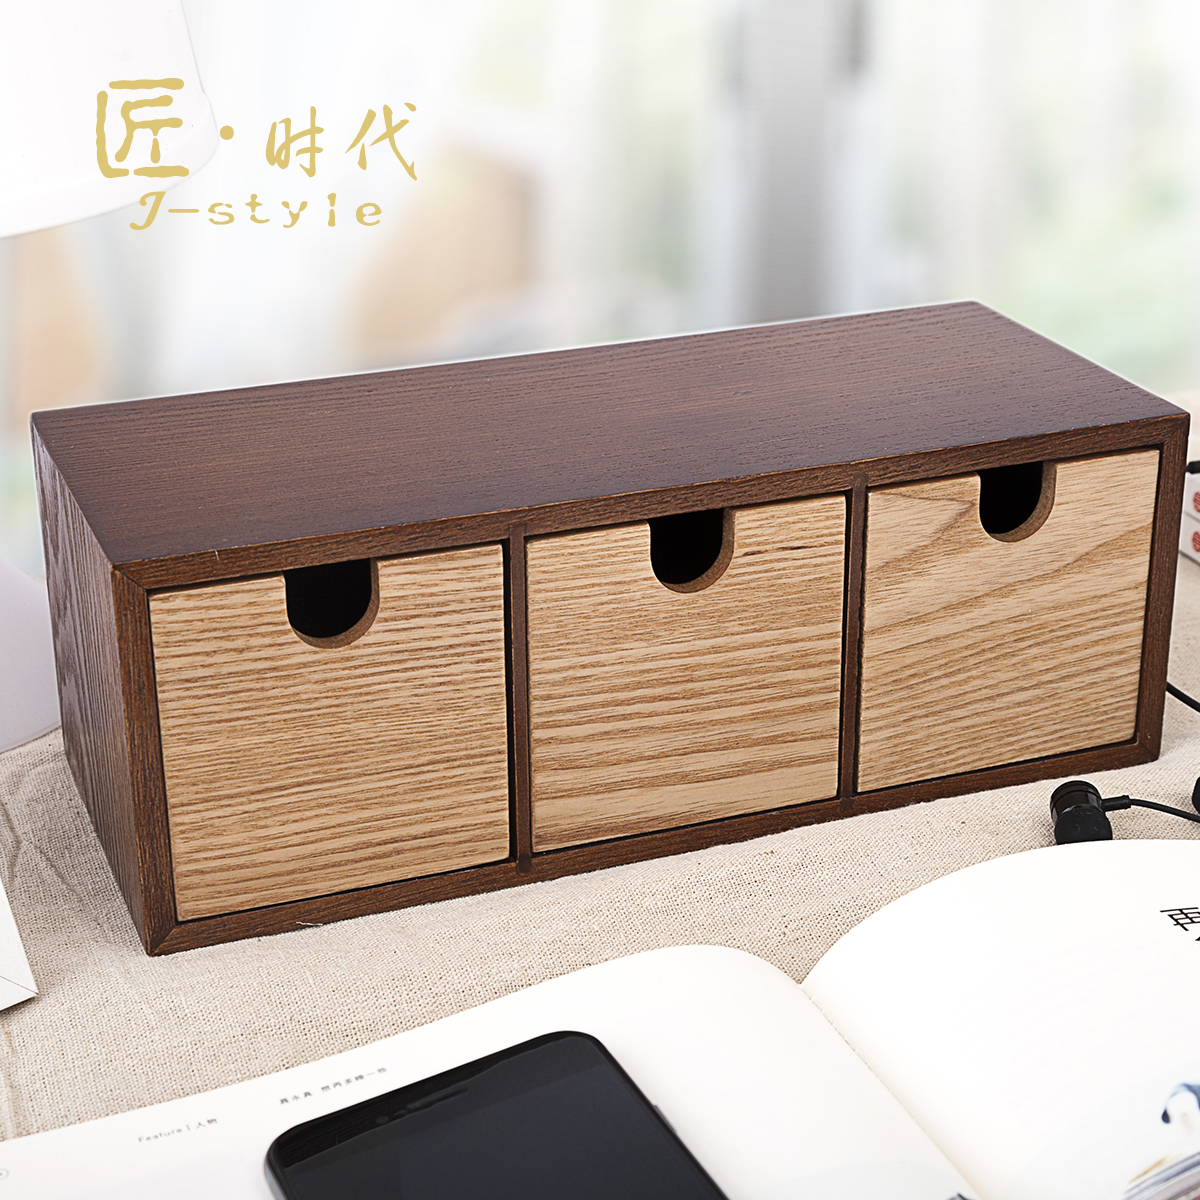 Carpenter era of desktop finishing drawer storage box remote control storage rack solid wood jewelry box storage box